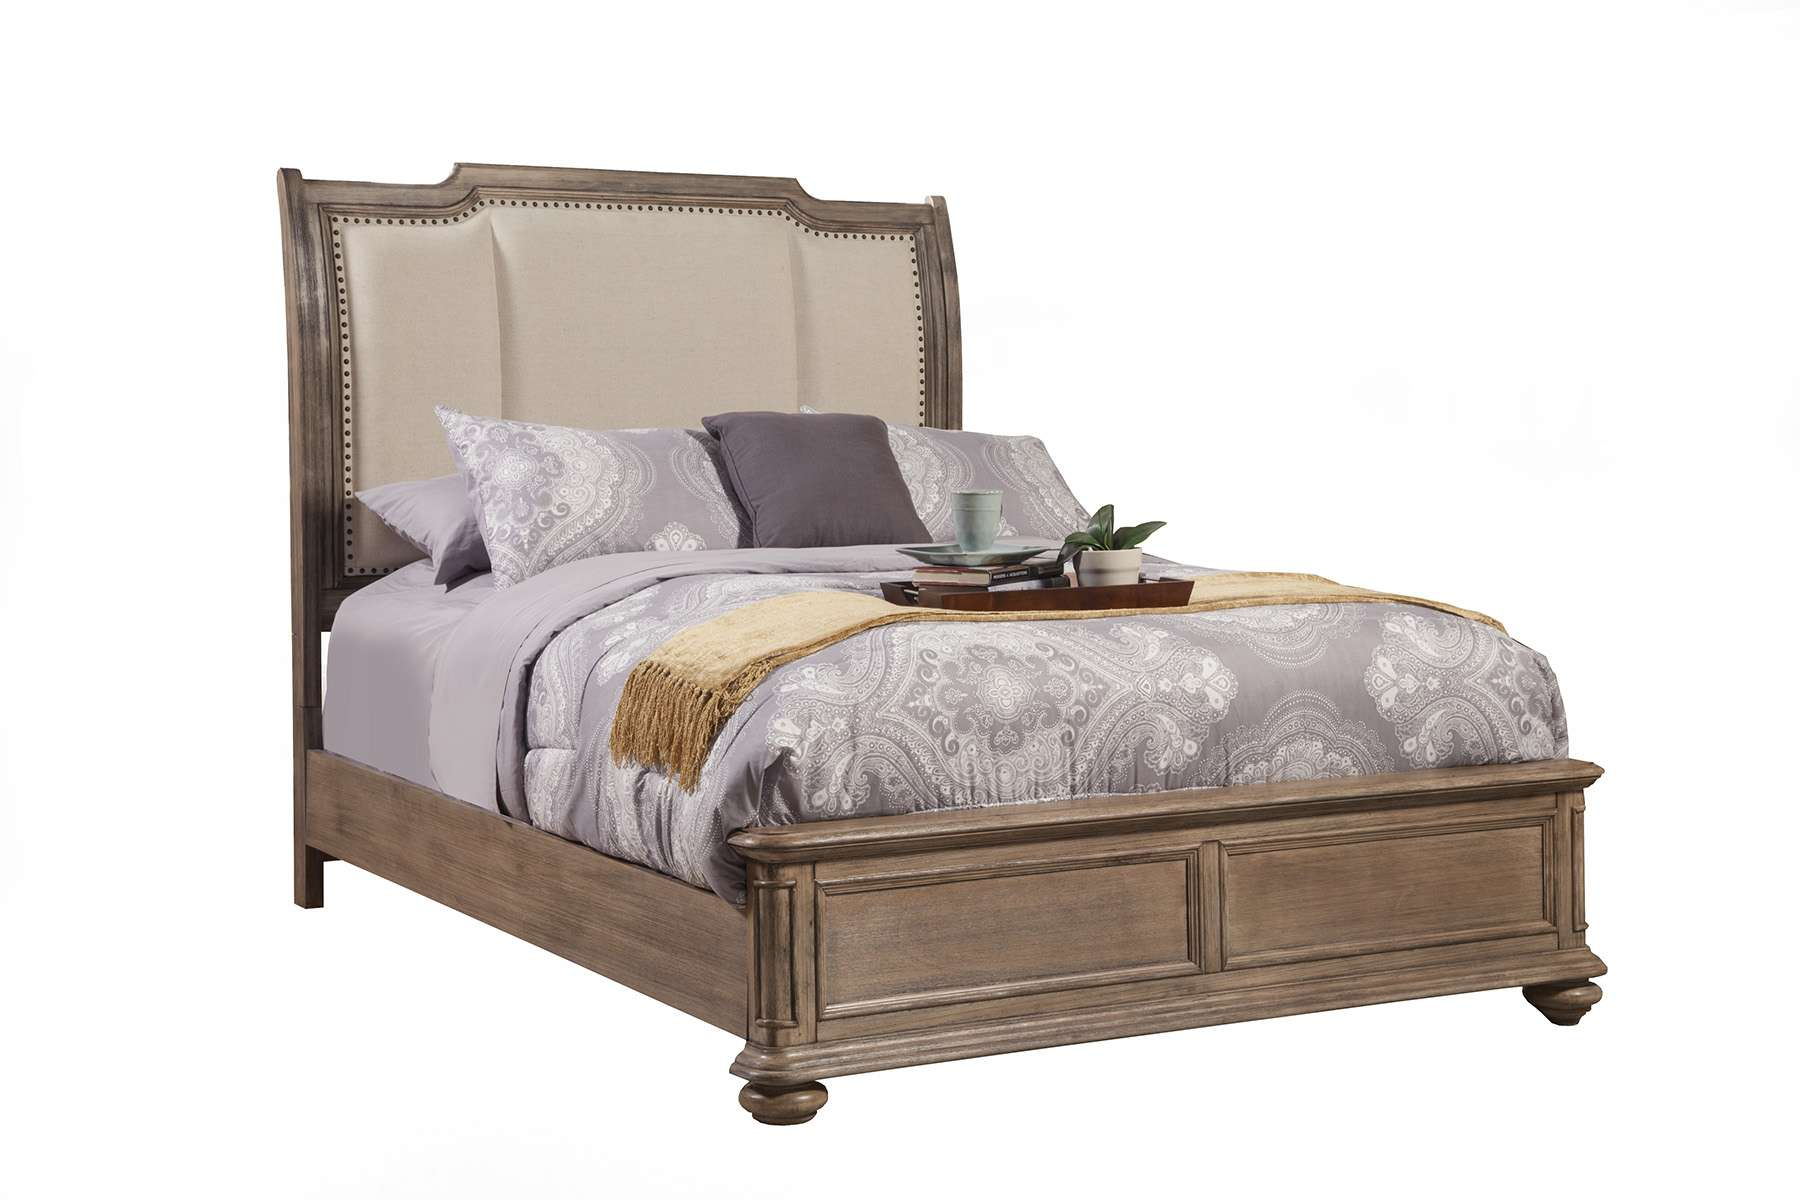 Melbourne French Truffle King Sleigh Bed with Upholstered Headboard